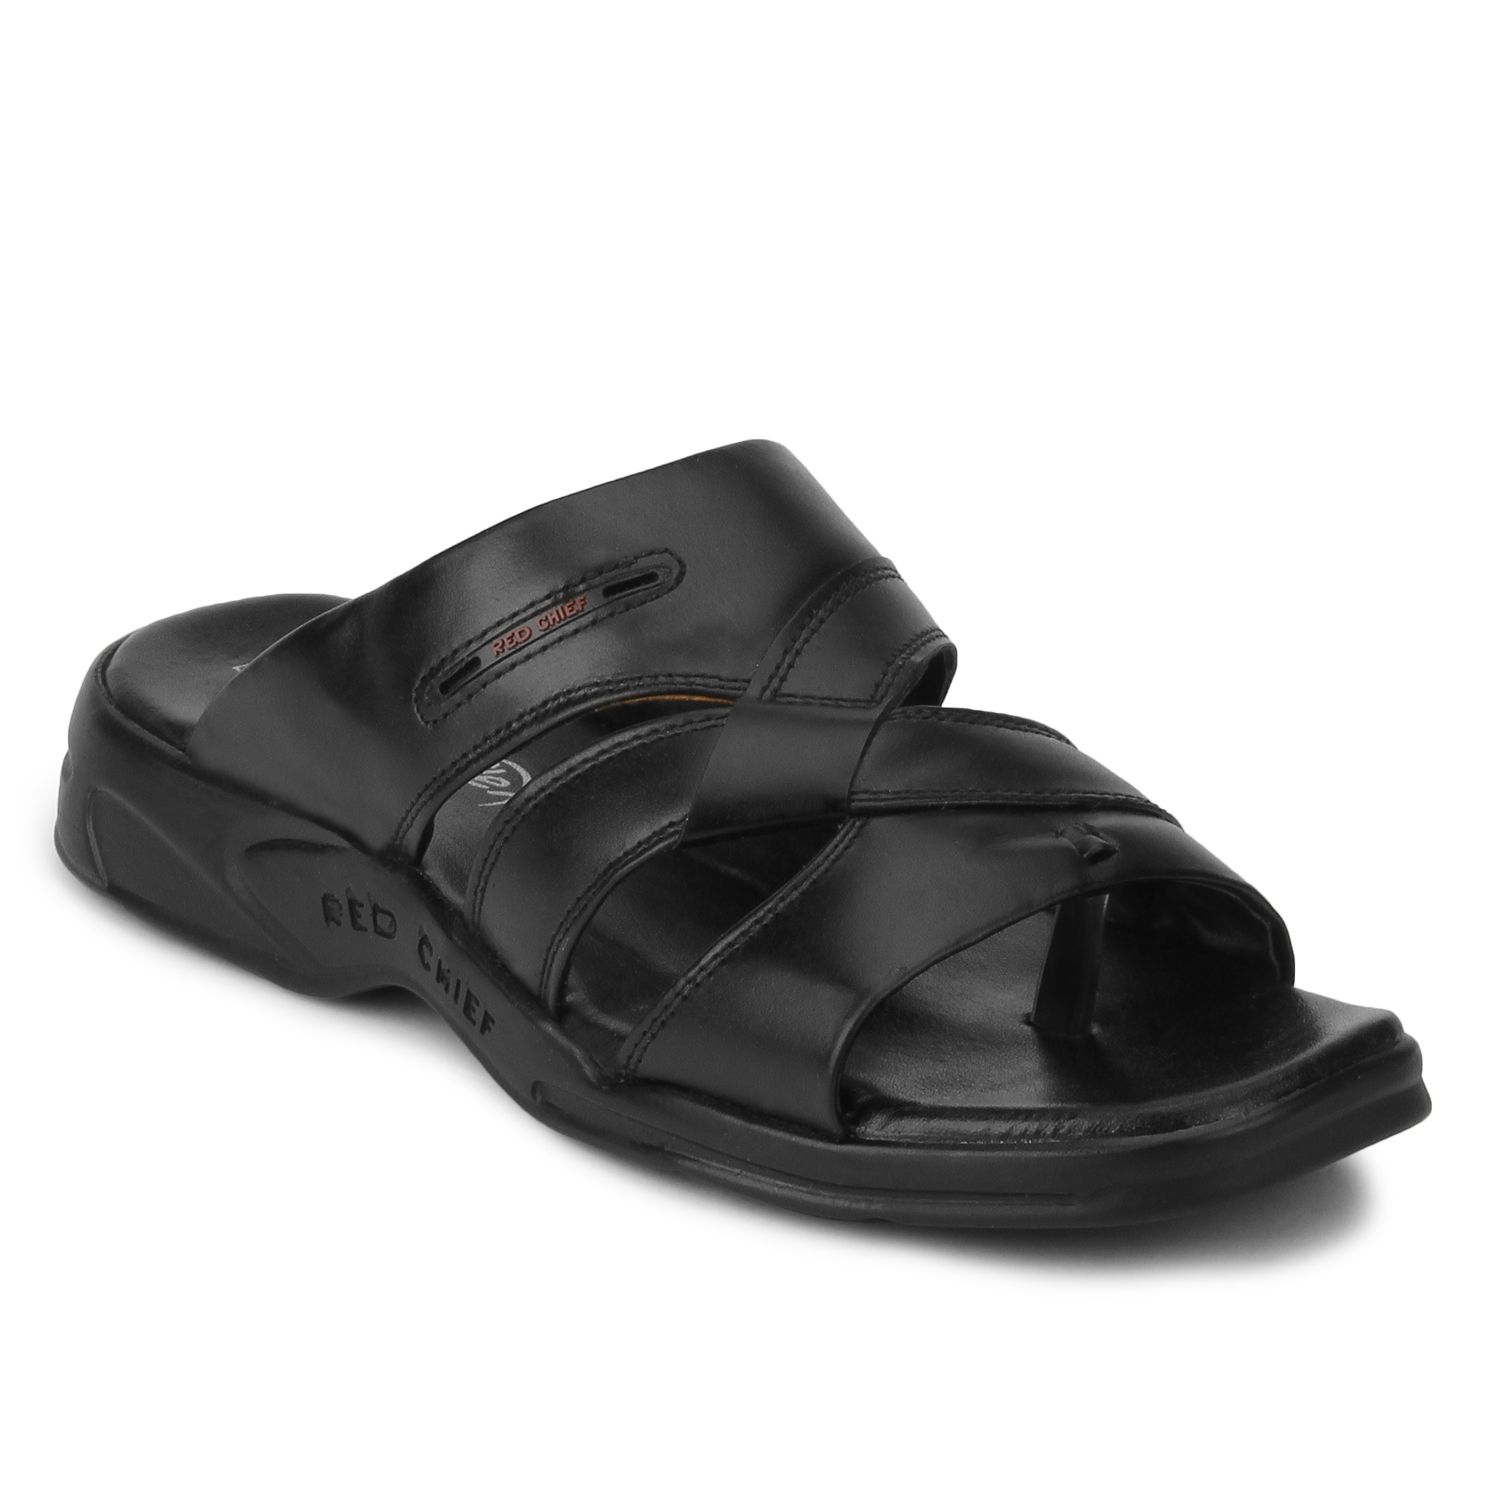 Accentuate your look with this pair of Black men's sandals from PowerFlex  by Red Chief.